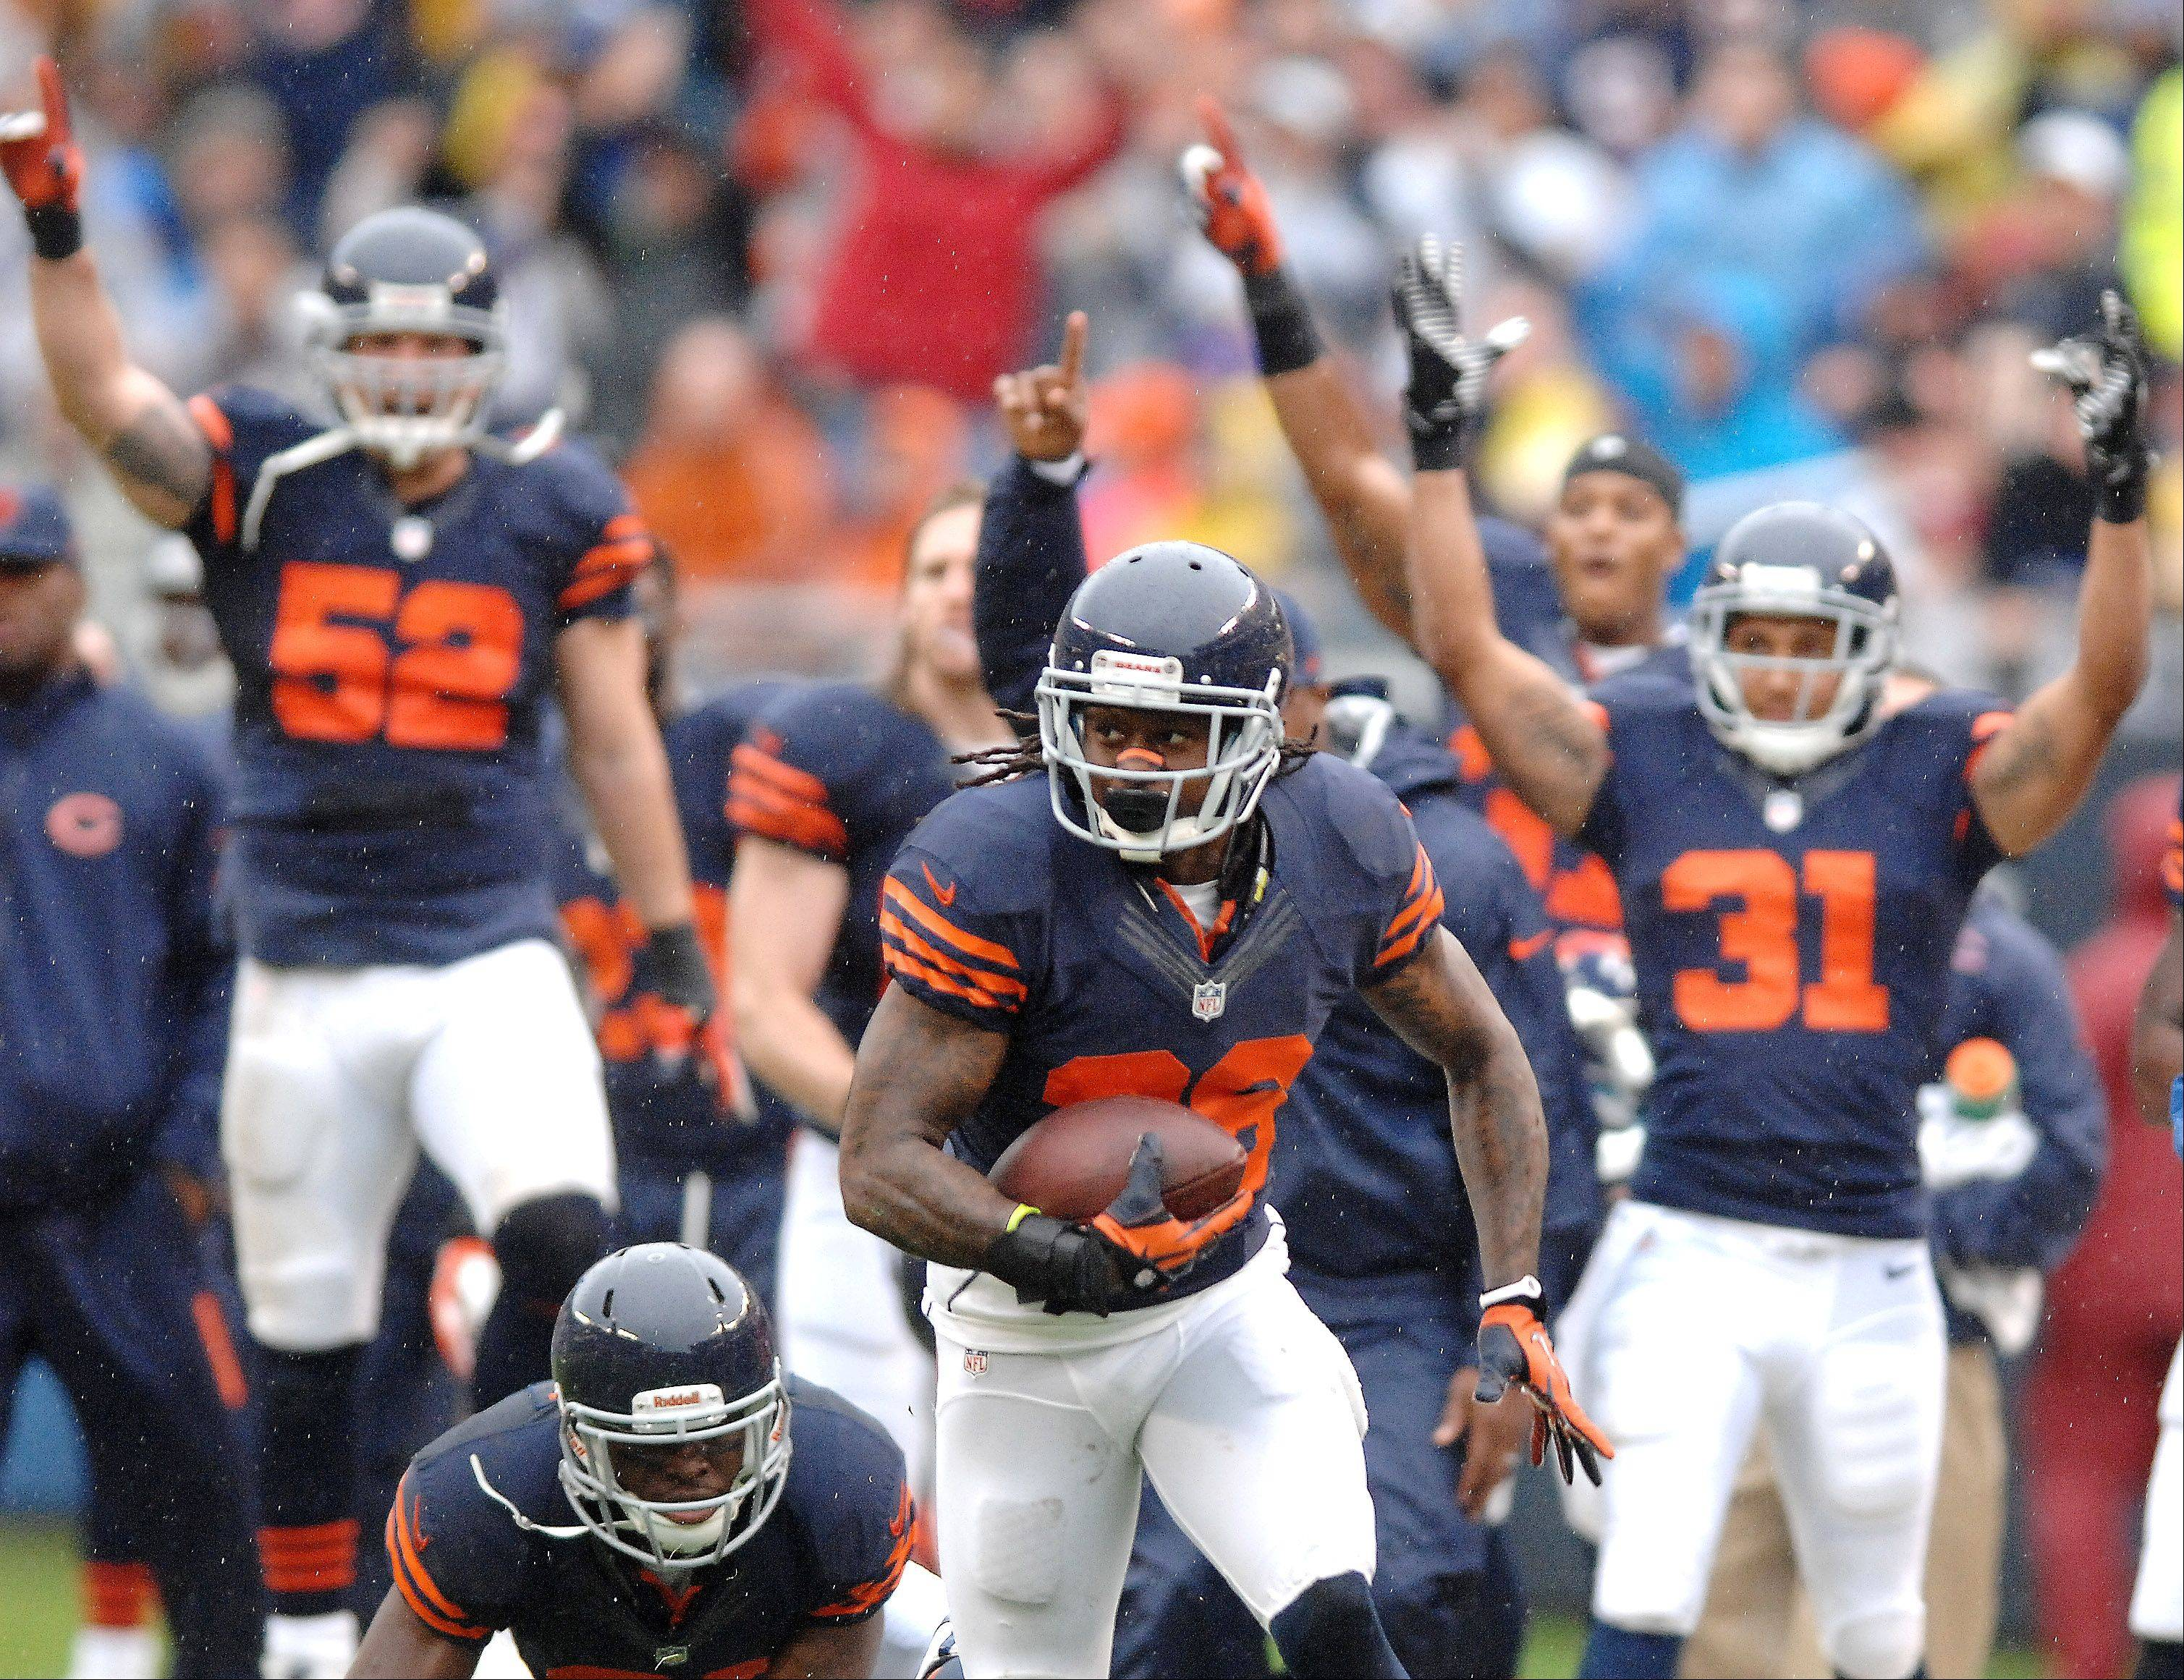 Chicago Bears cornerback Tim Jennings (26) returns an interception for a touchdown during Sunday's game at Soldier Field in Chicago.